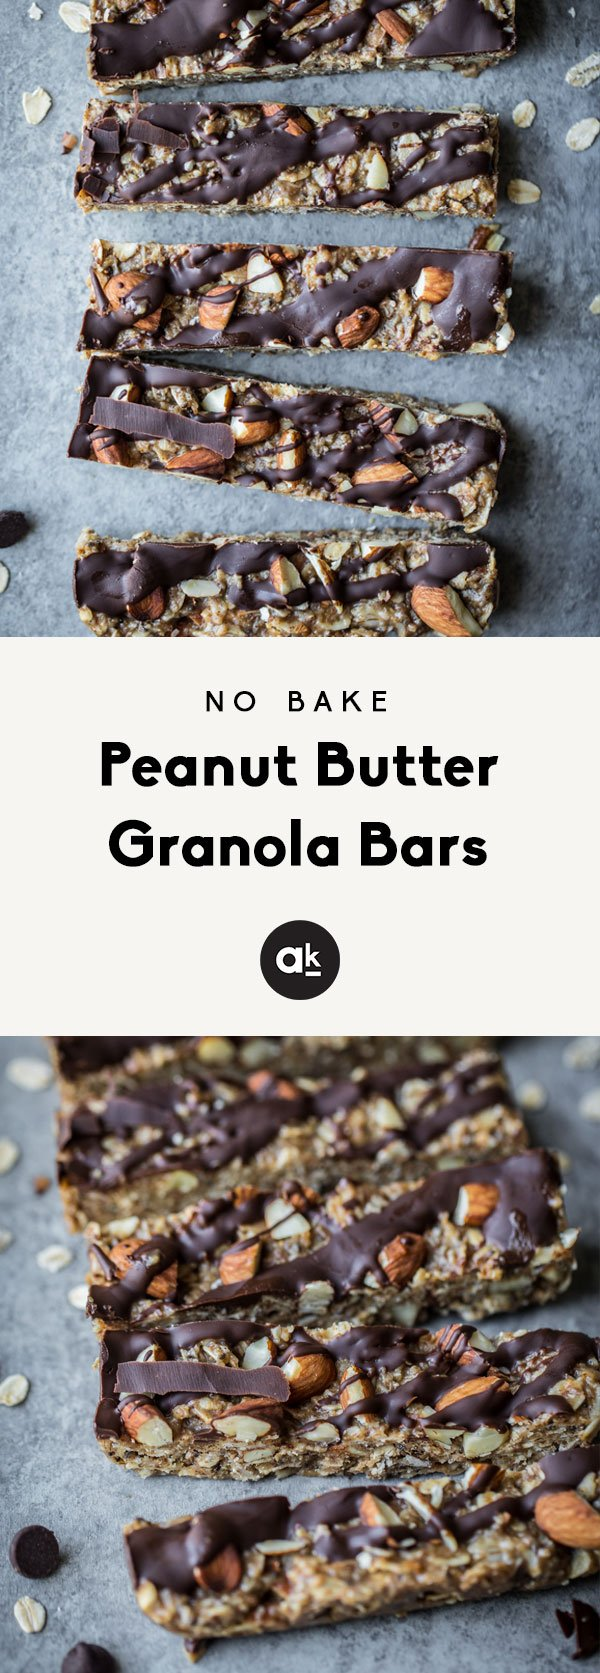 Homemade healthy no bake peanut butter granola bars will be your new favorite snack. These chewy granola bars are packed with wholesome ingredients like peanut butter, honey, chia seeds, flax, almonds, and drizzled with dark chocolate. YUM.